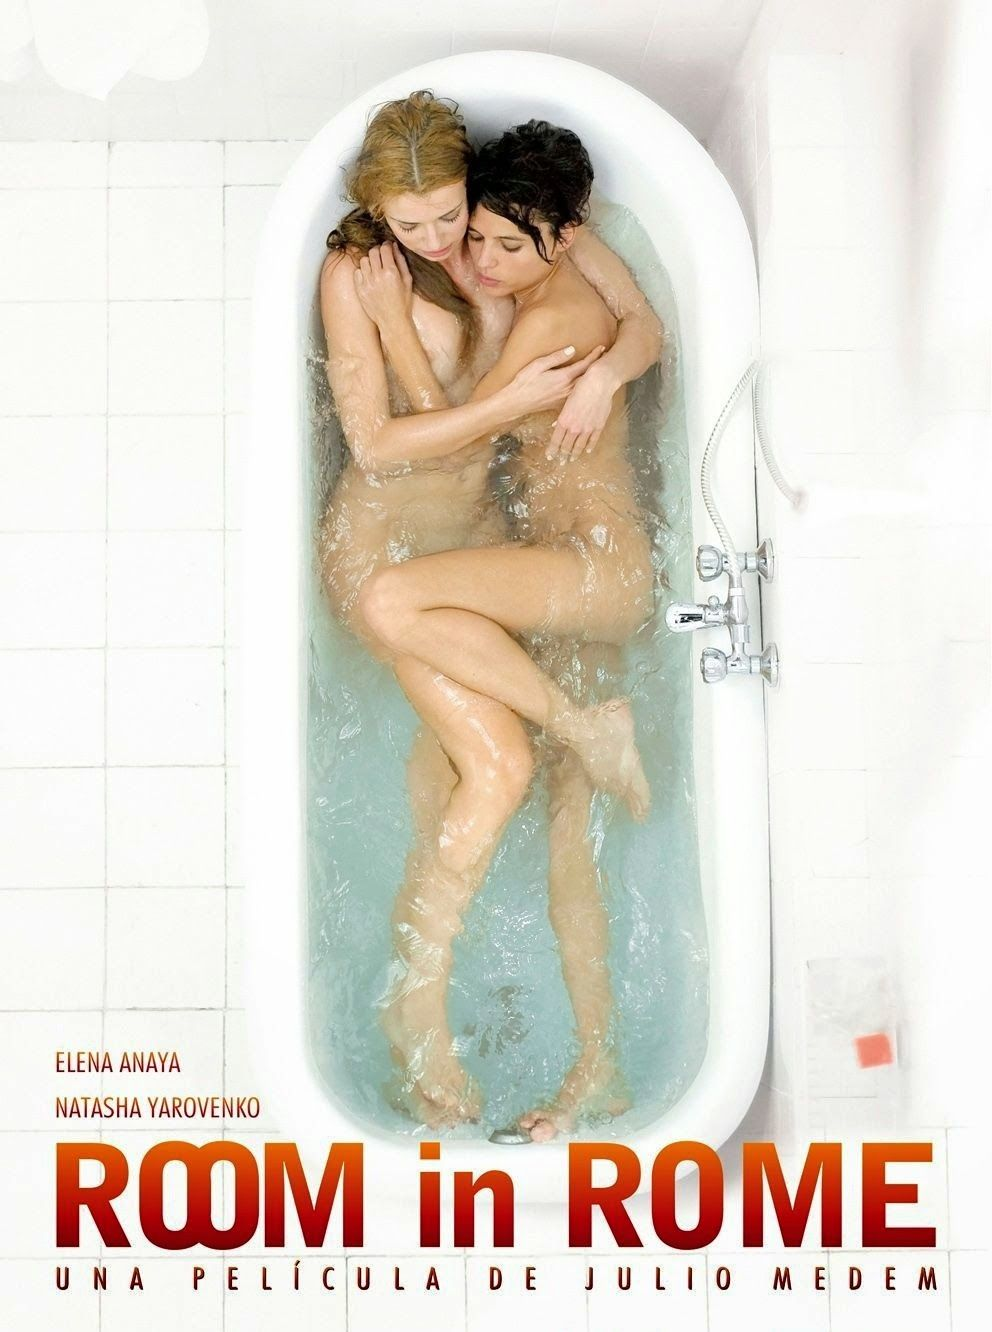 Room In Rome 2010 Rome Movie Streaming Movies Free Full Movies Online Free